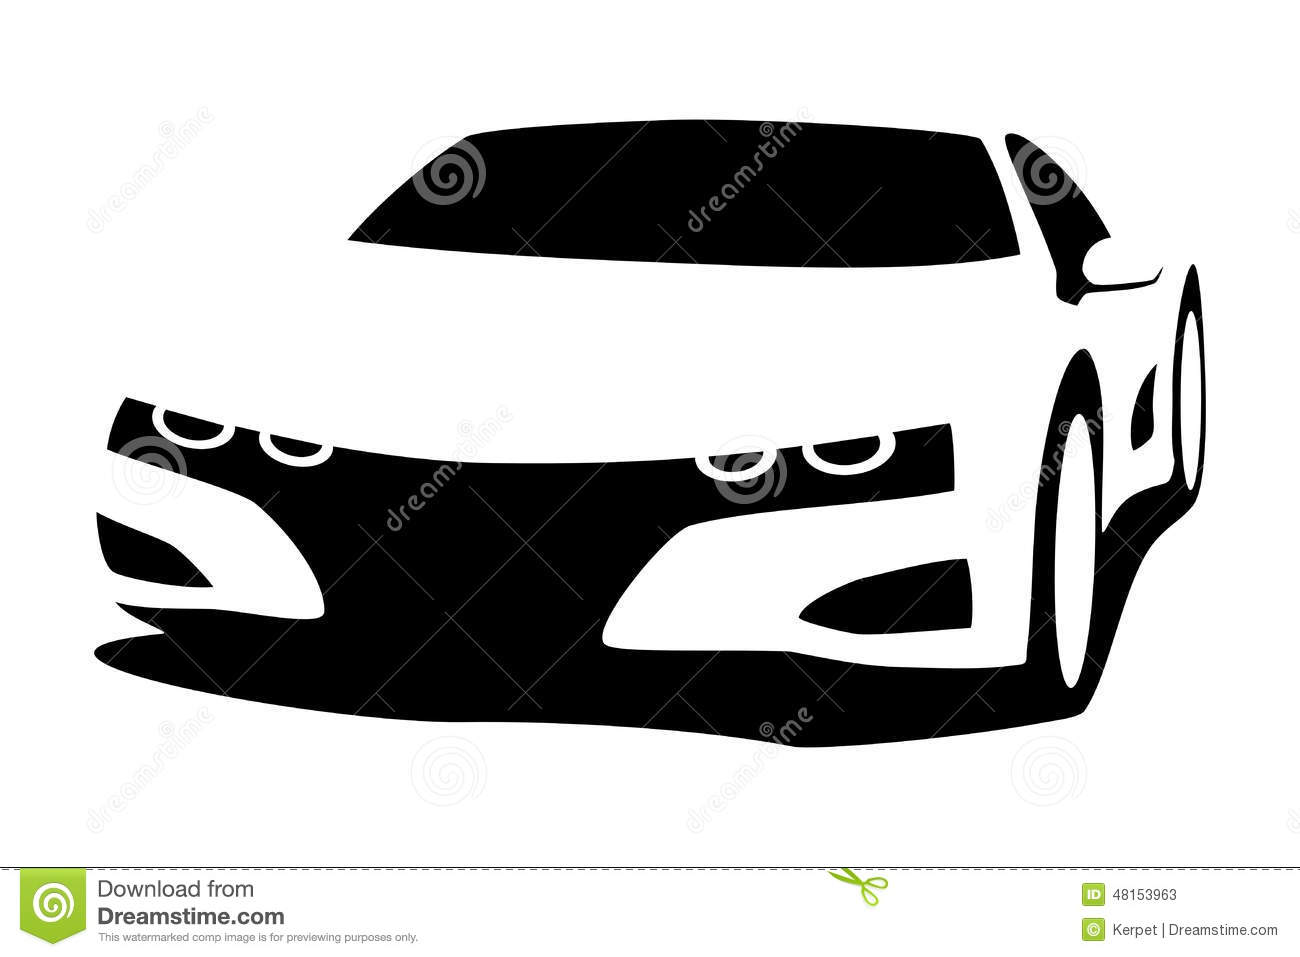 Silhouette tuning car stock vector. Illustration of vehicle - 48153963